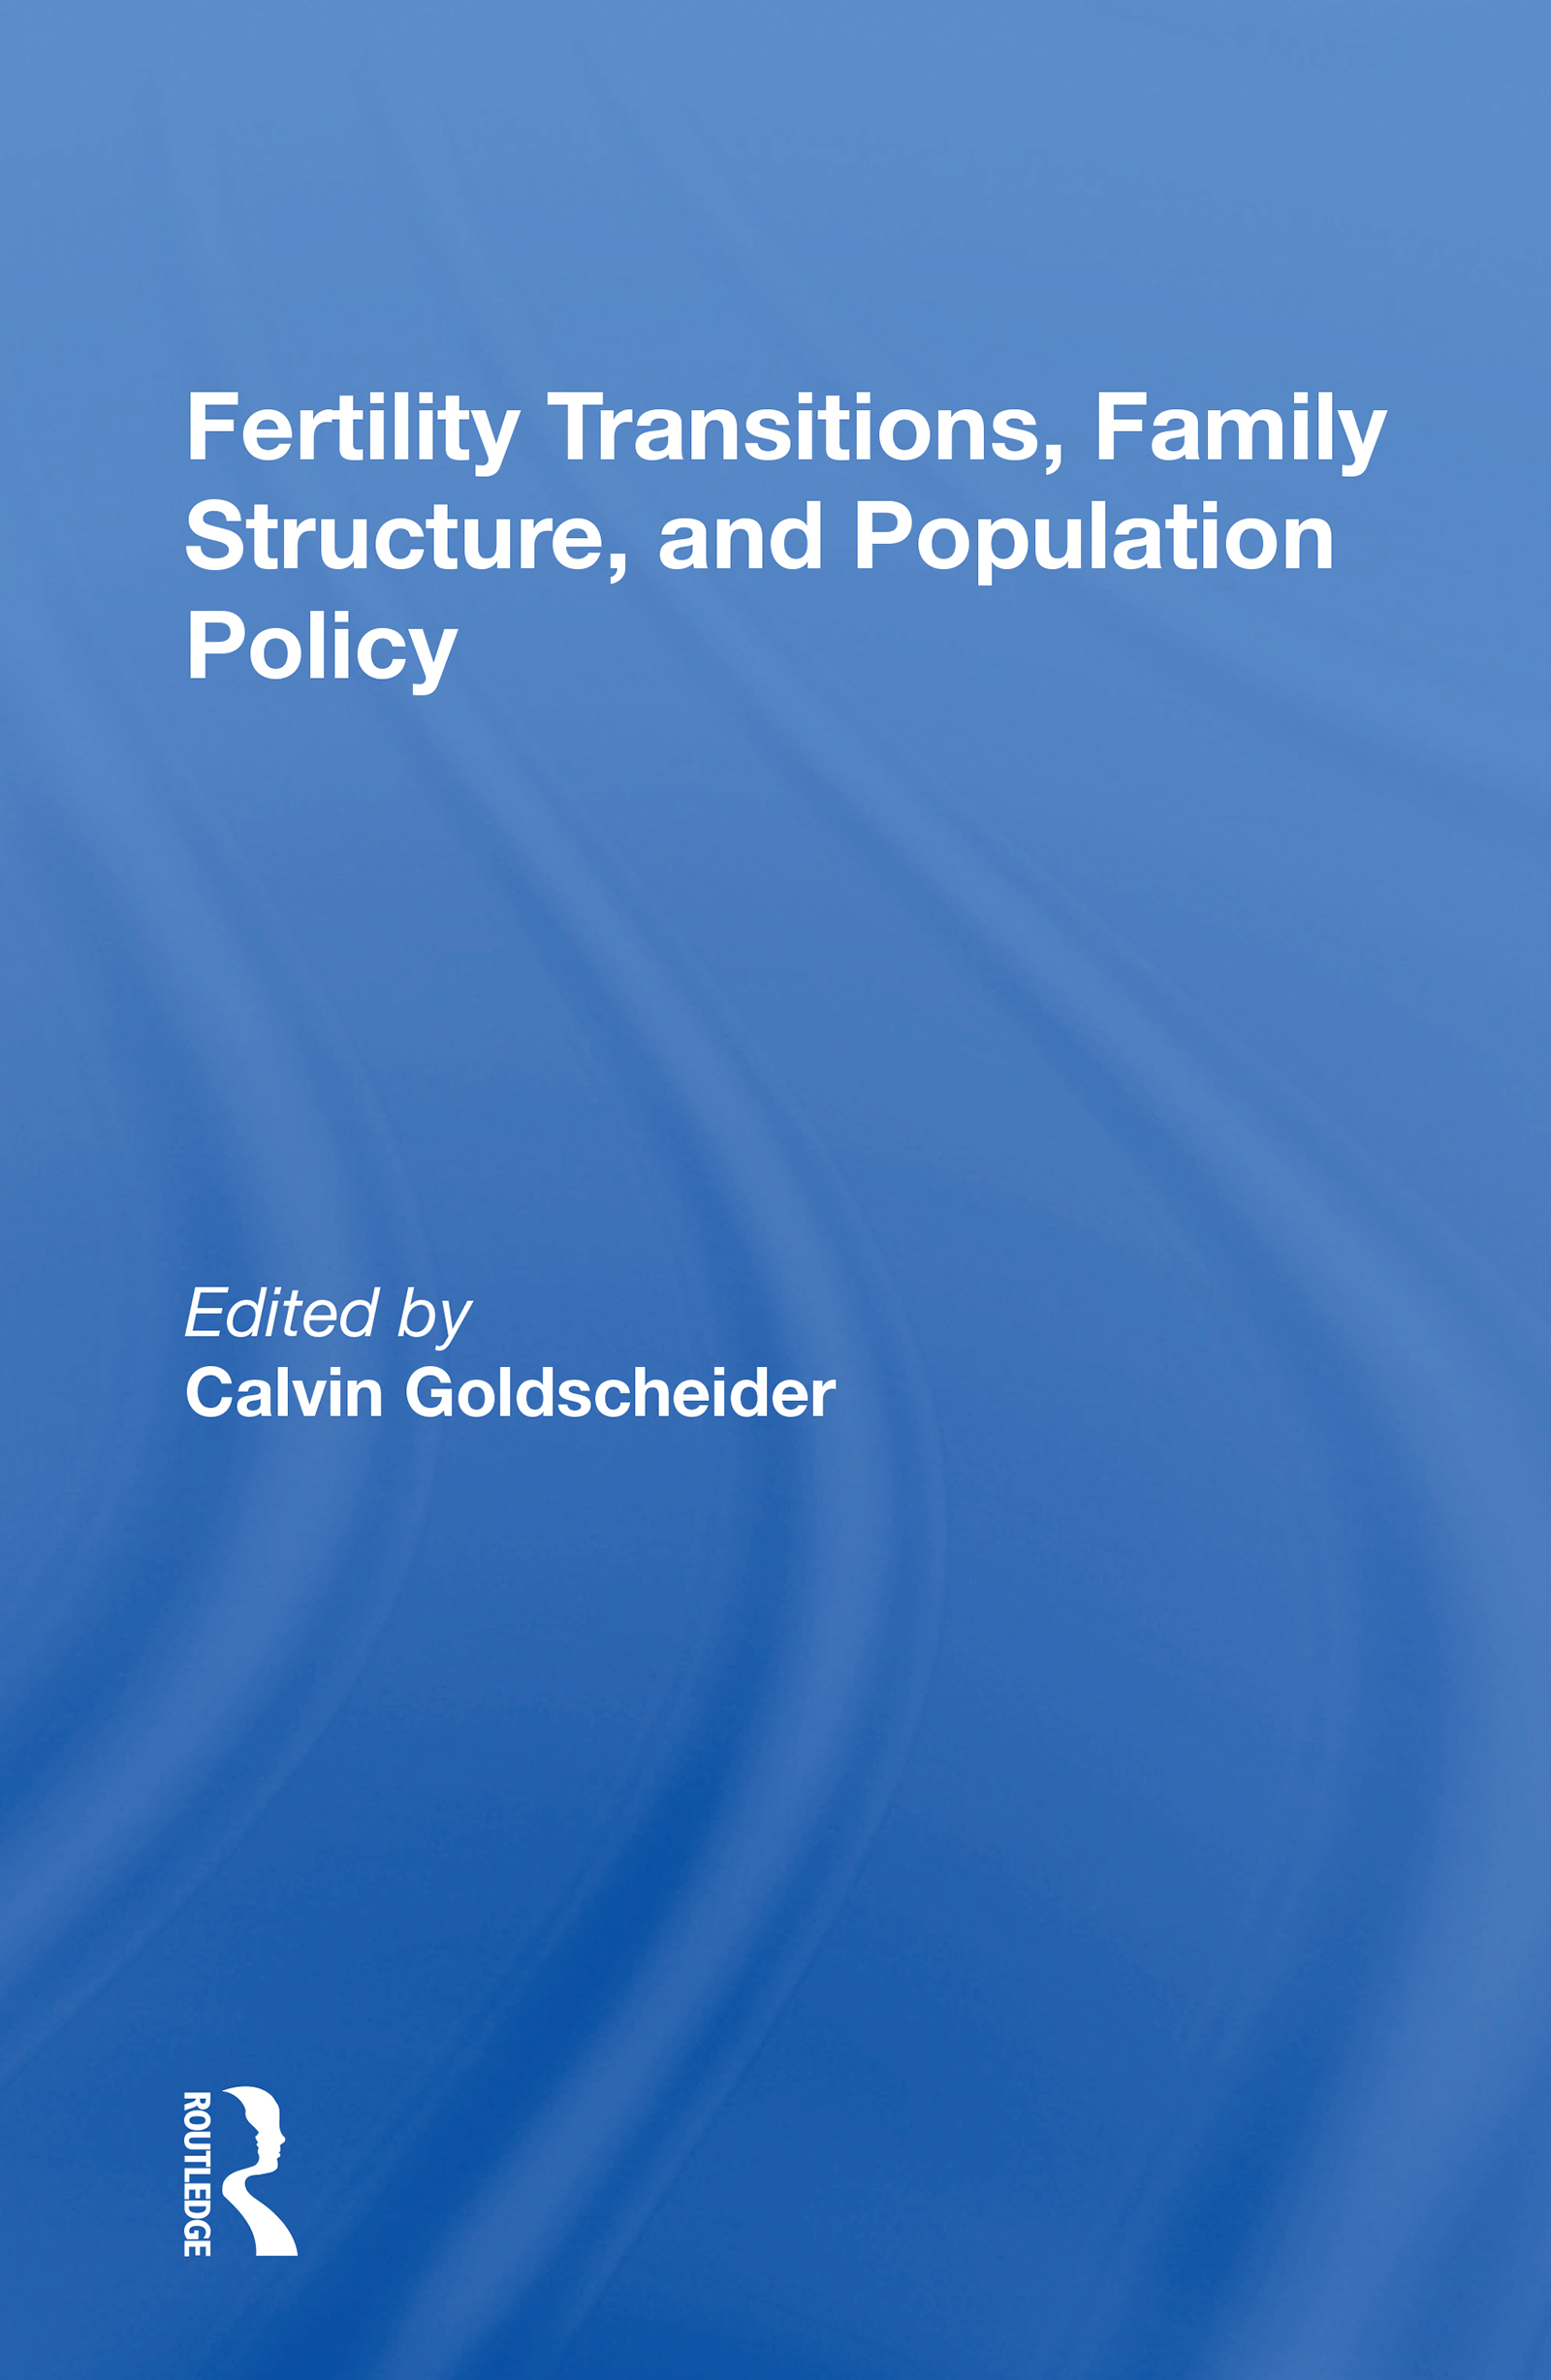 Fertility Transitions, Family Structure, and Population Policy